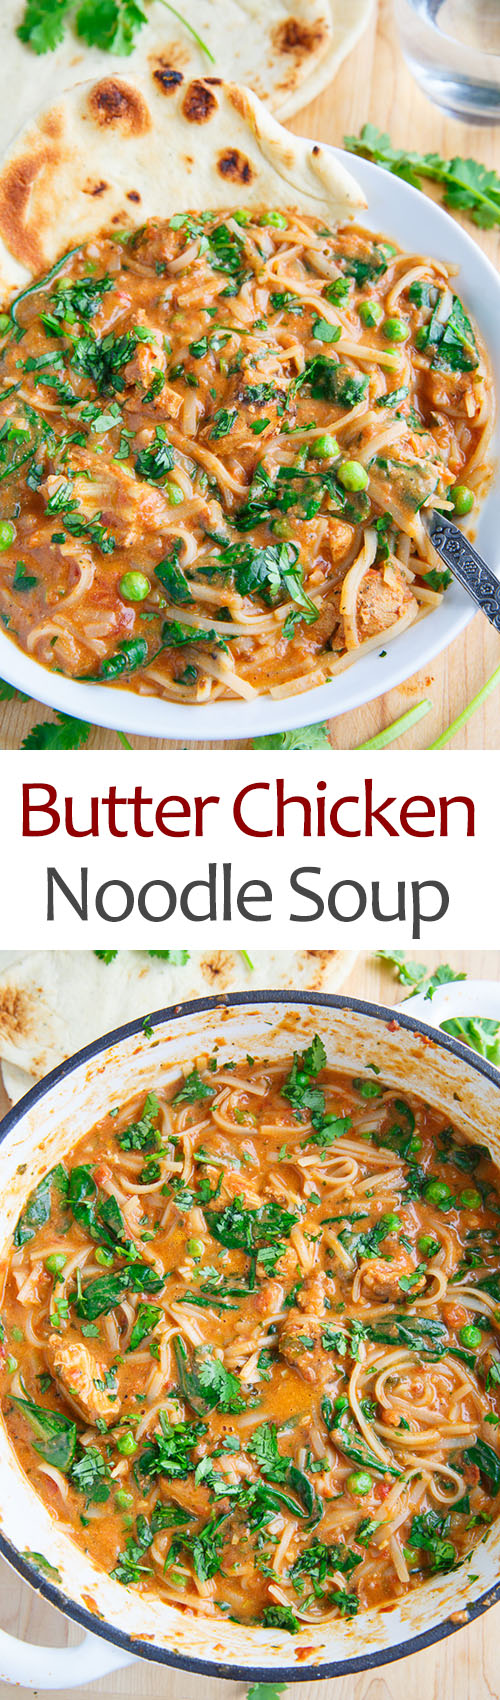 Butter Chicken Noodle Soup